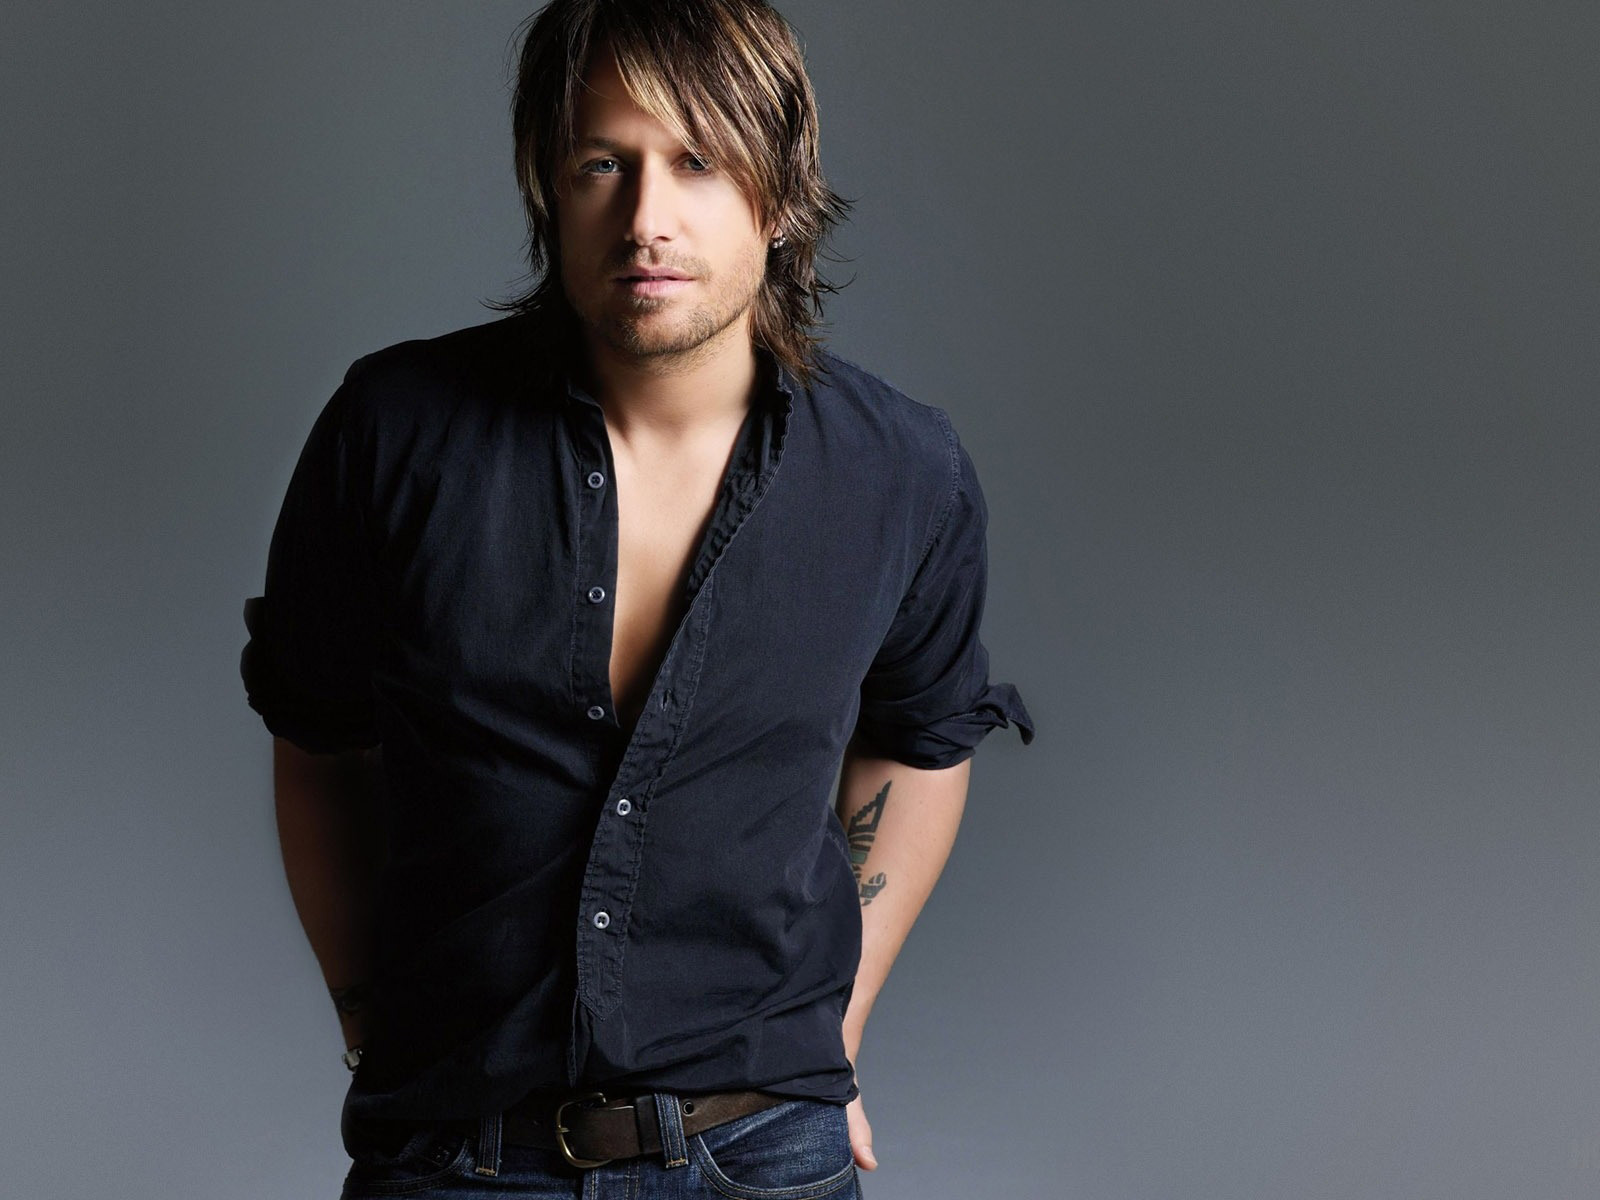 Keith Urban Background